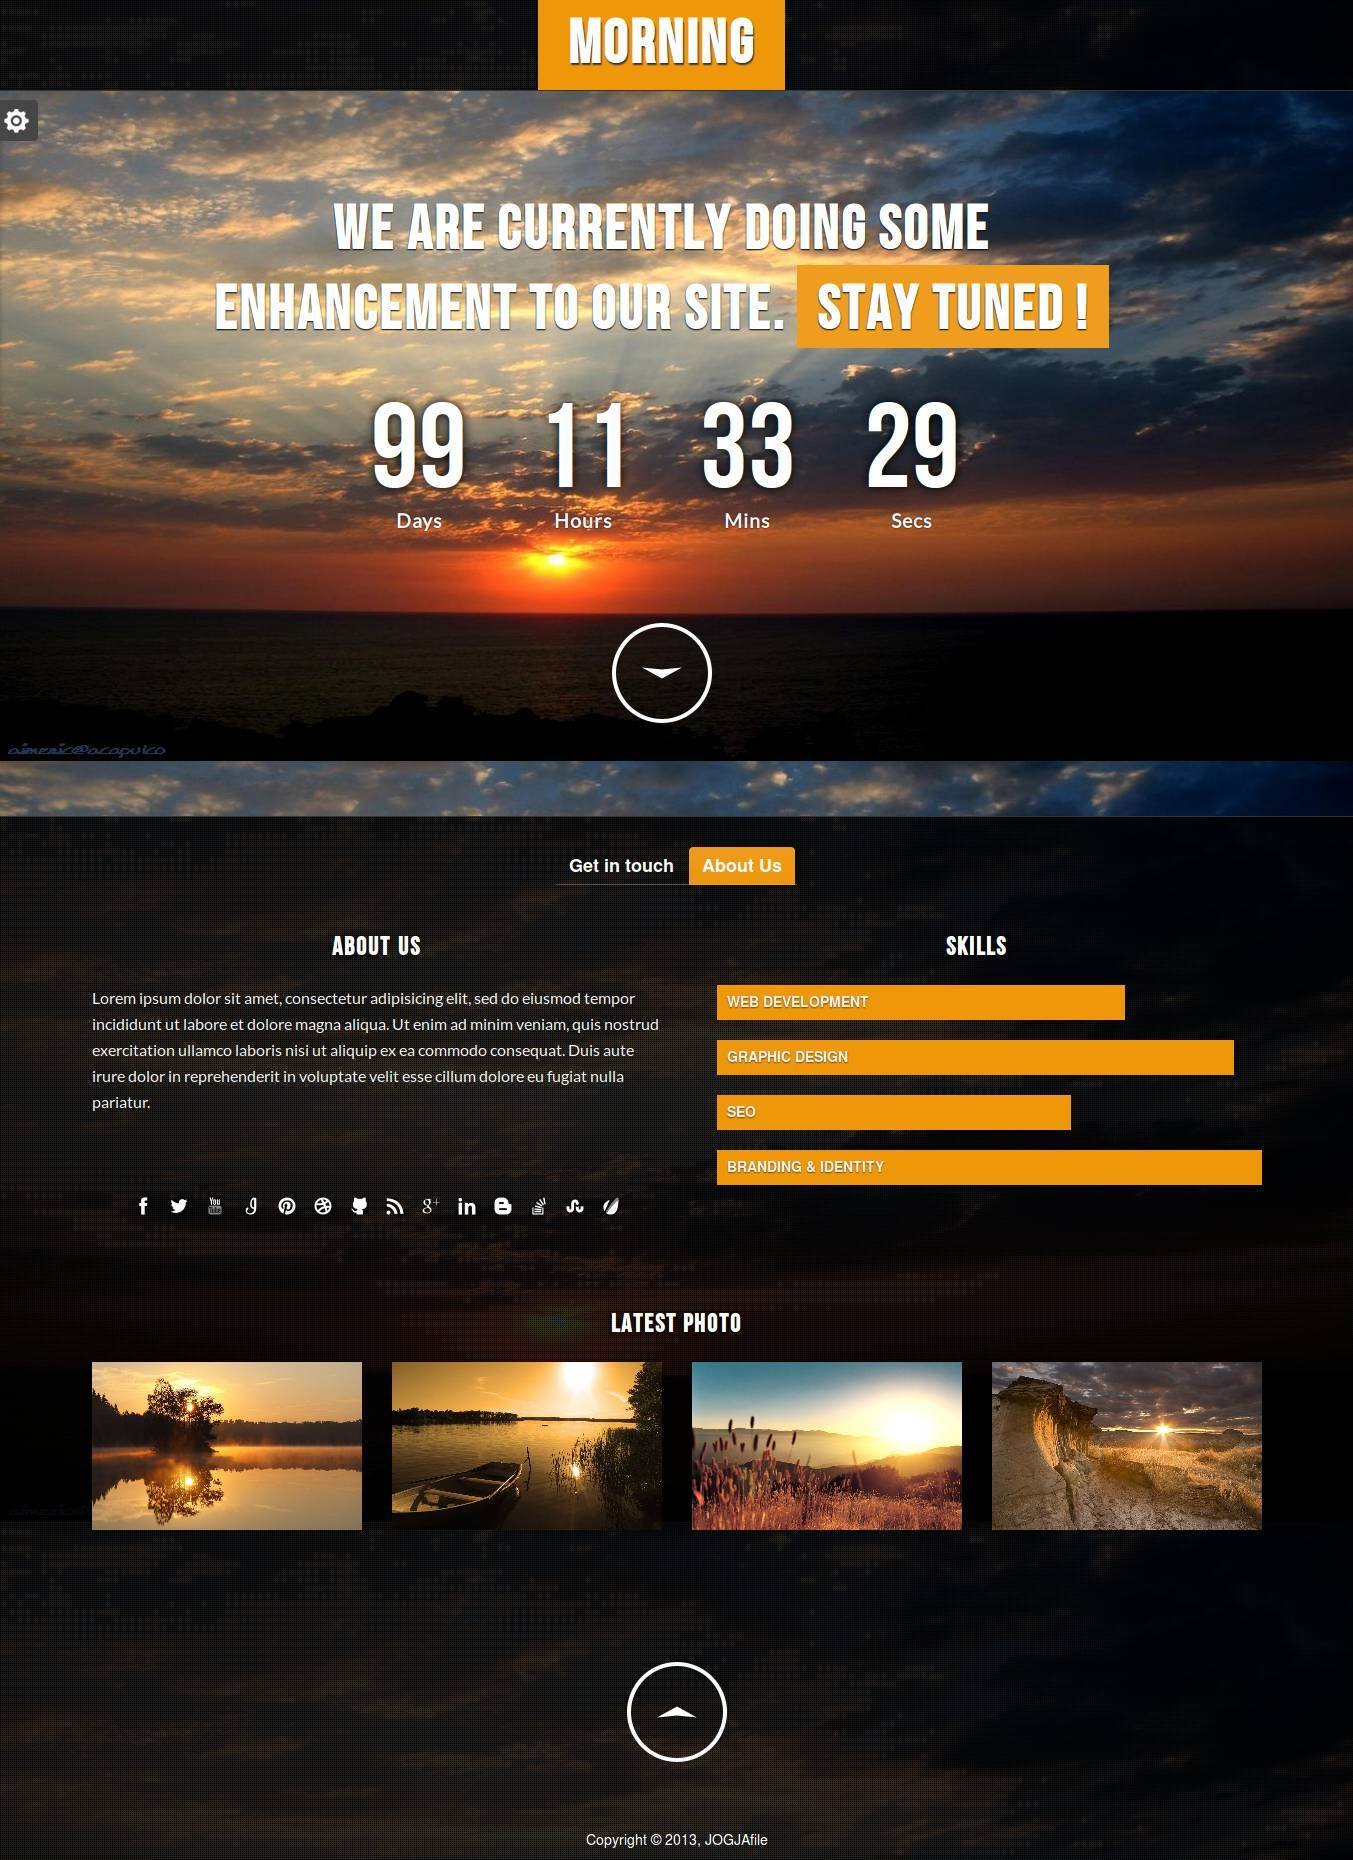 Morning - Responsive Underconstruction Template